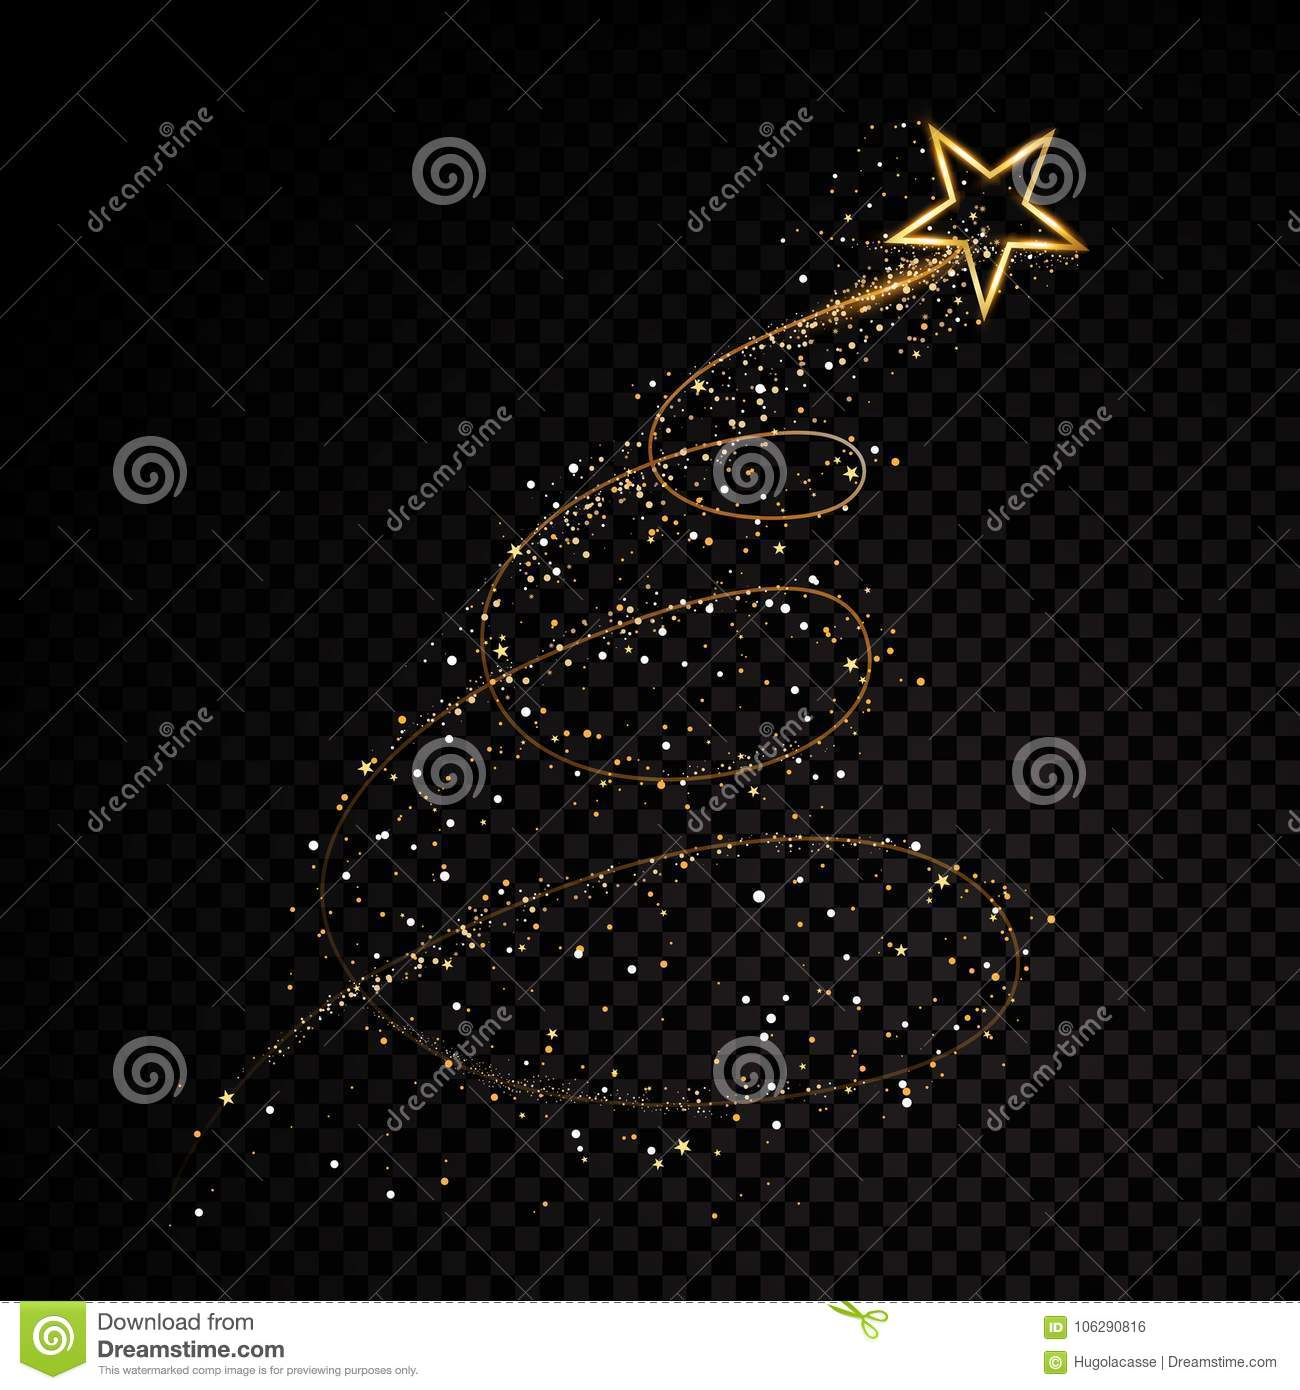 Gold glittering star dust trail sparkling particles on transparent background. Space comet tail. Vector glamour fashion